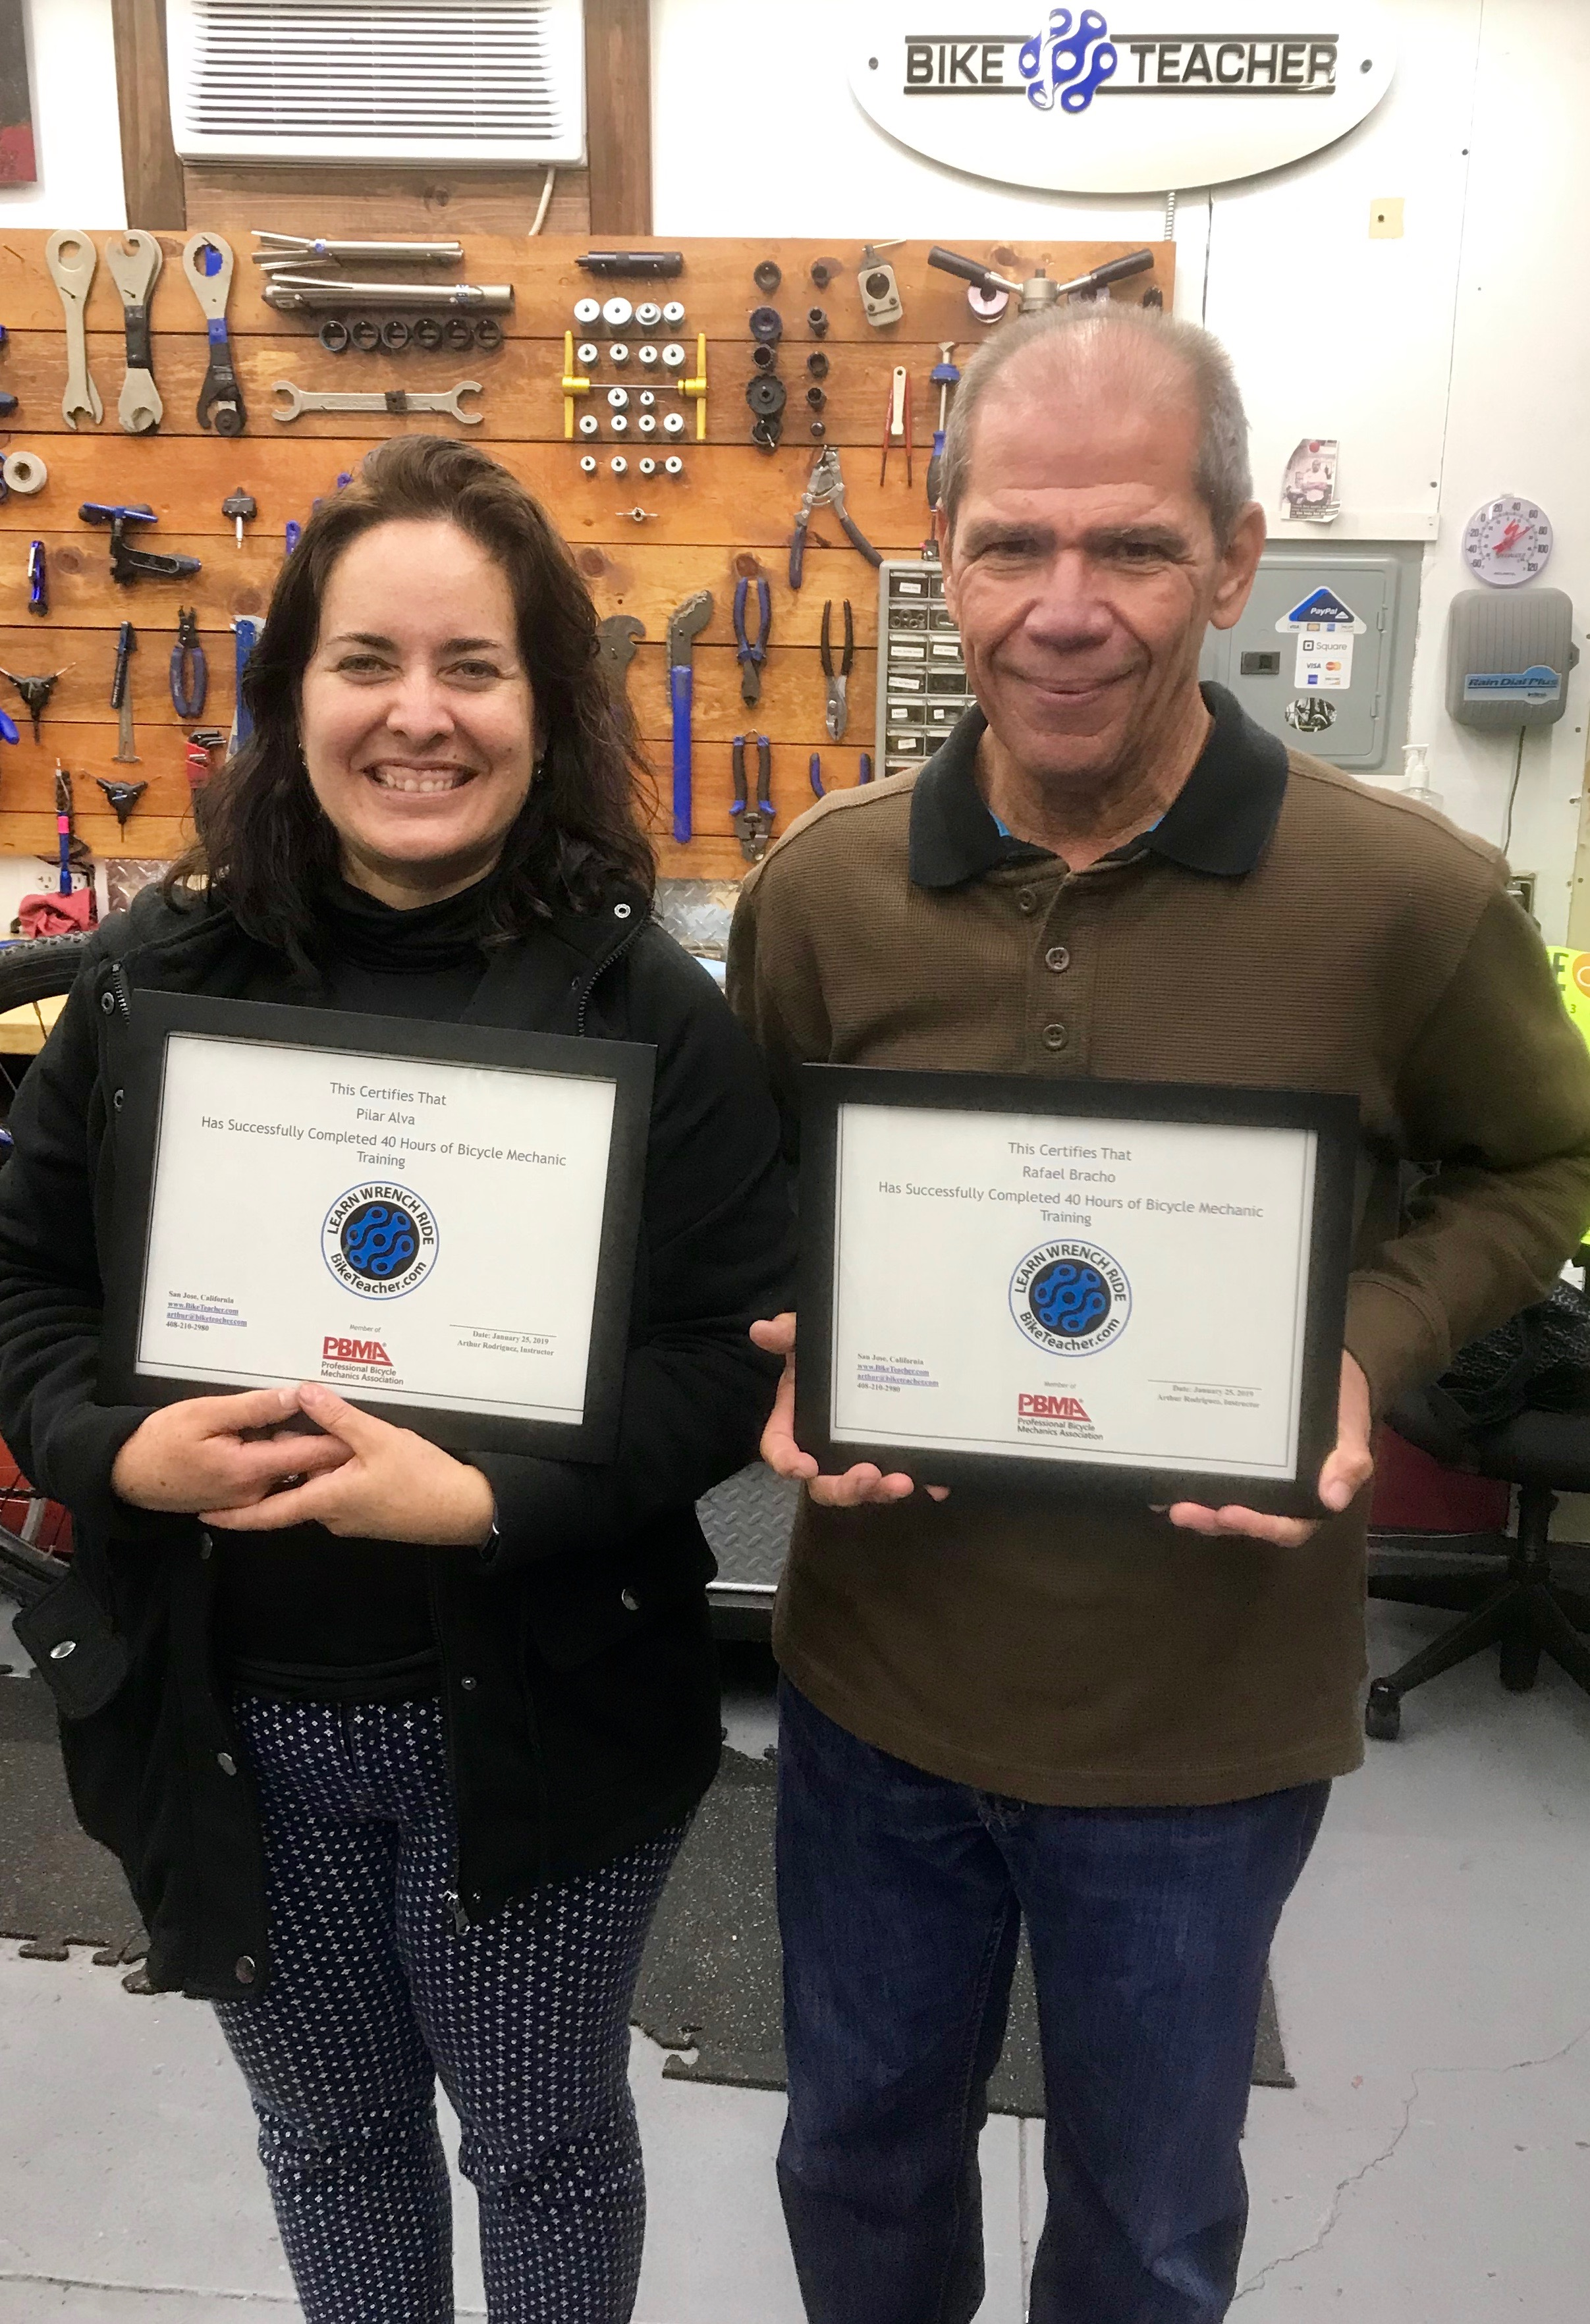 I took a 40 hours of Bicycle Mechanic Training with Arthur, it was a 100% hands-on experience.After this course, I am able to maintain, identify problems and repair bikes.Excellent course, good ambient I highly recommend it. - Rafael & Pilar From Miami Florida January 2019. Both avid road cyclist.